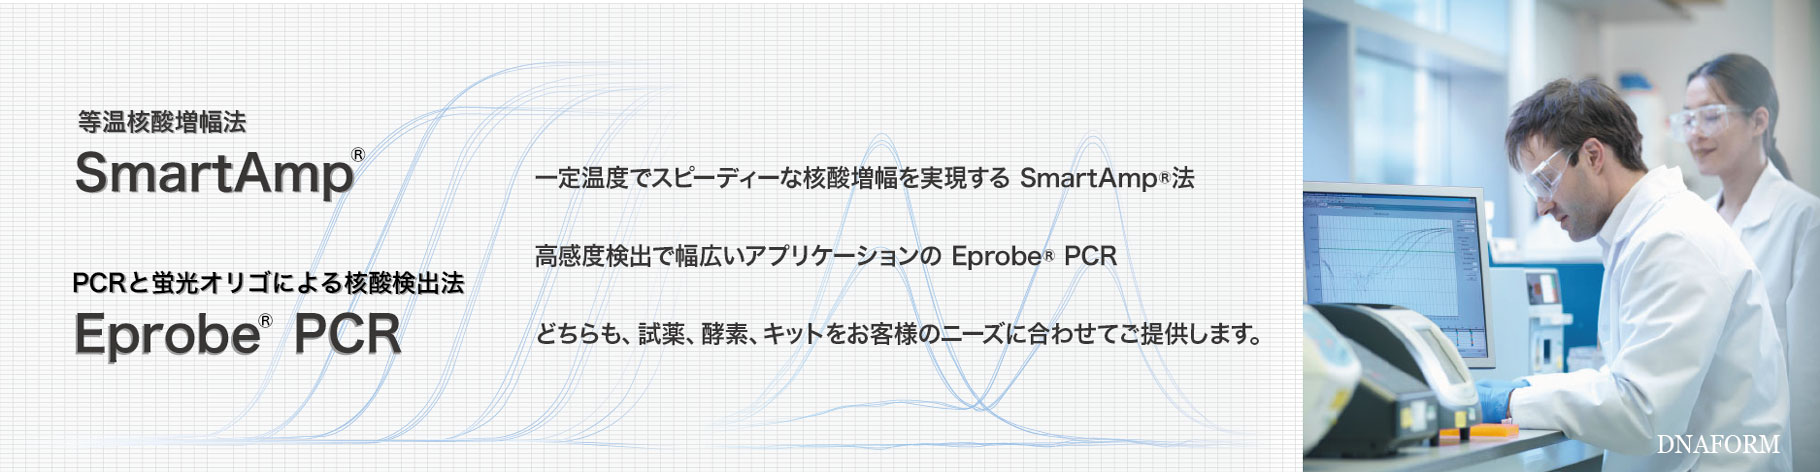 SmartAmp / Eprobe PCR